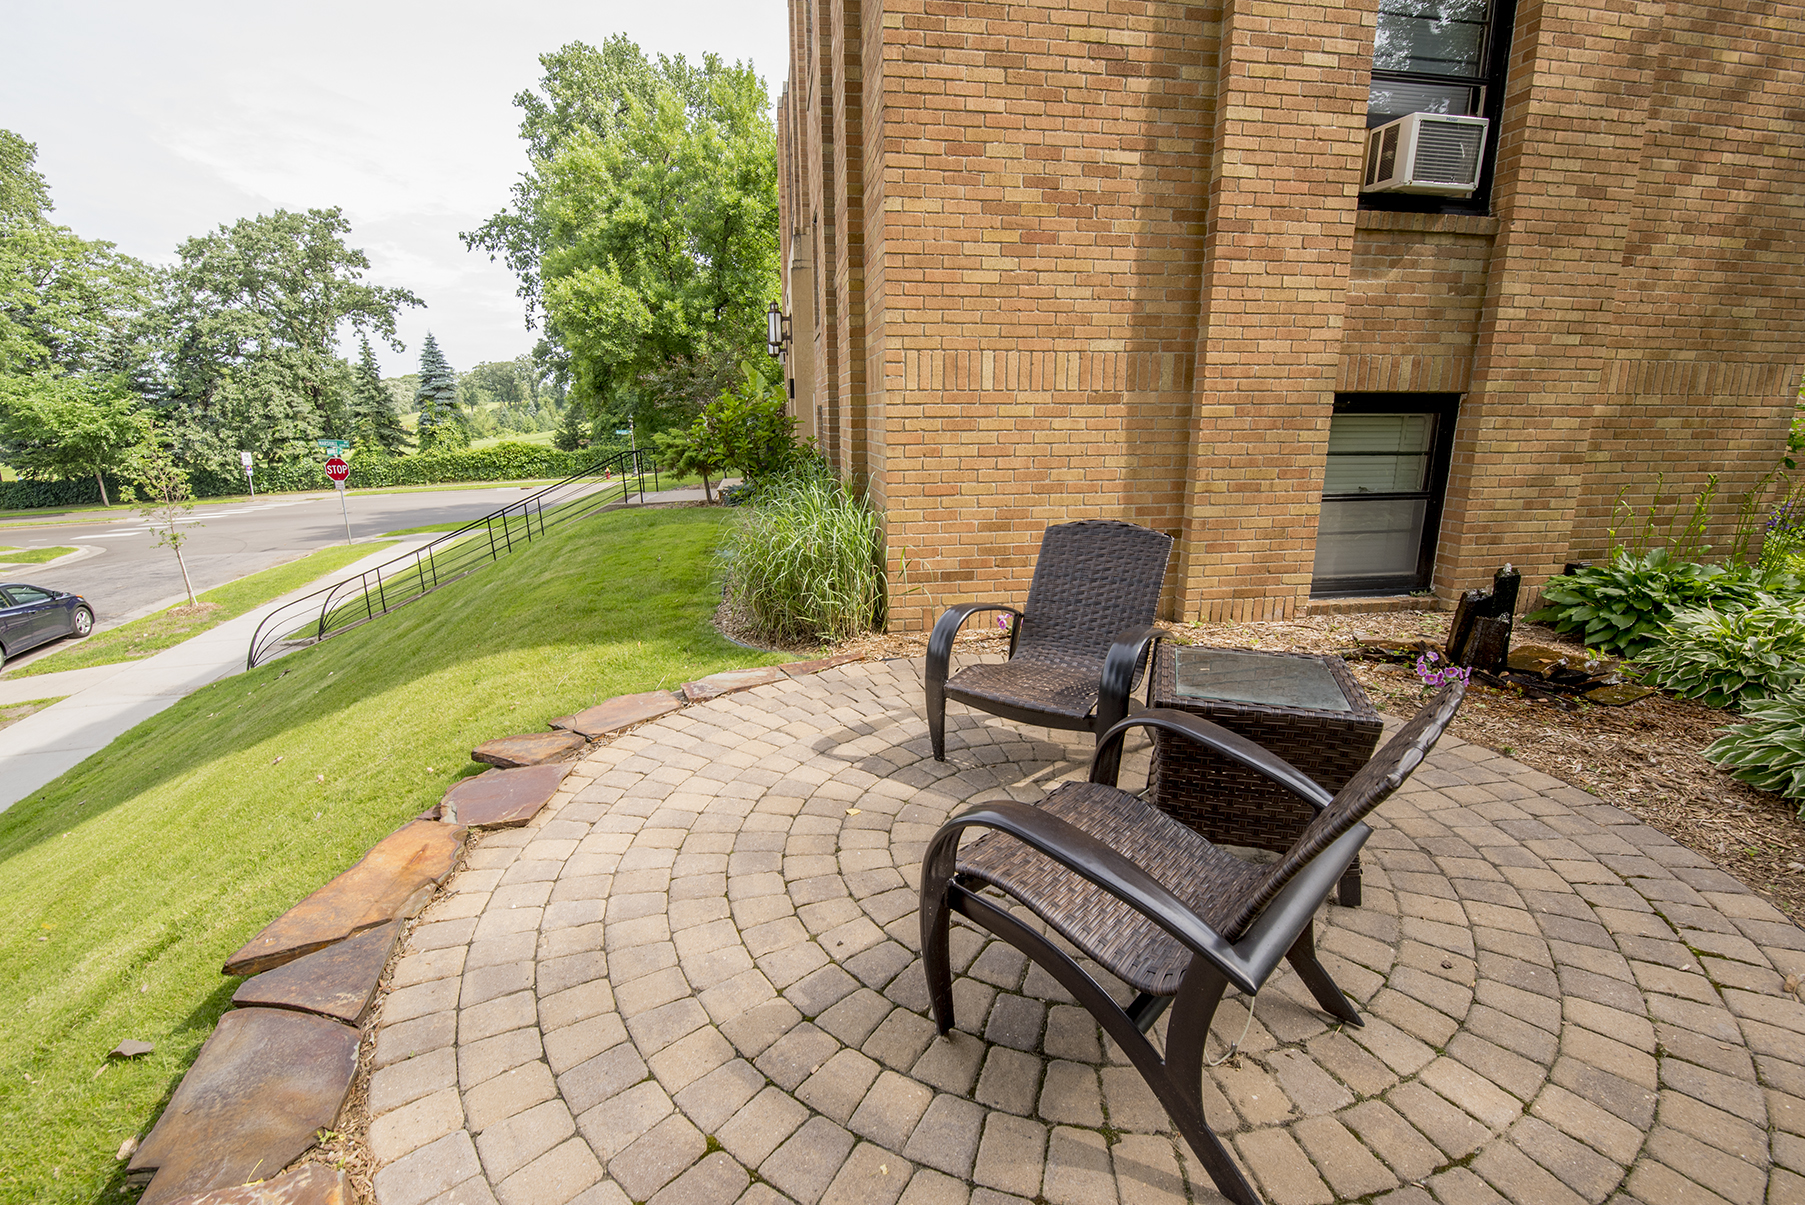 A perfect spot to enjoy some time outside - a small water feature and a comfortable patio is available for our residents to enjoy.